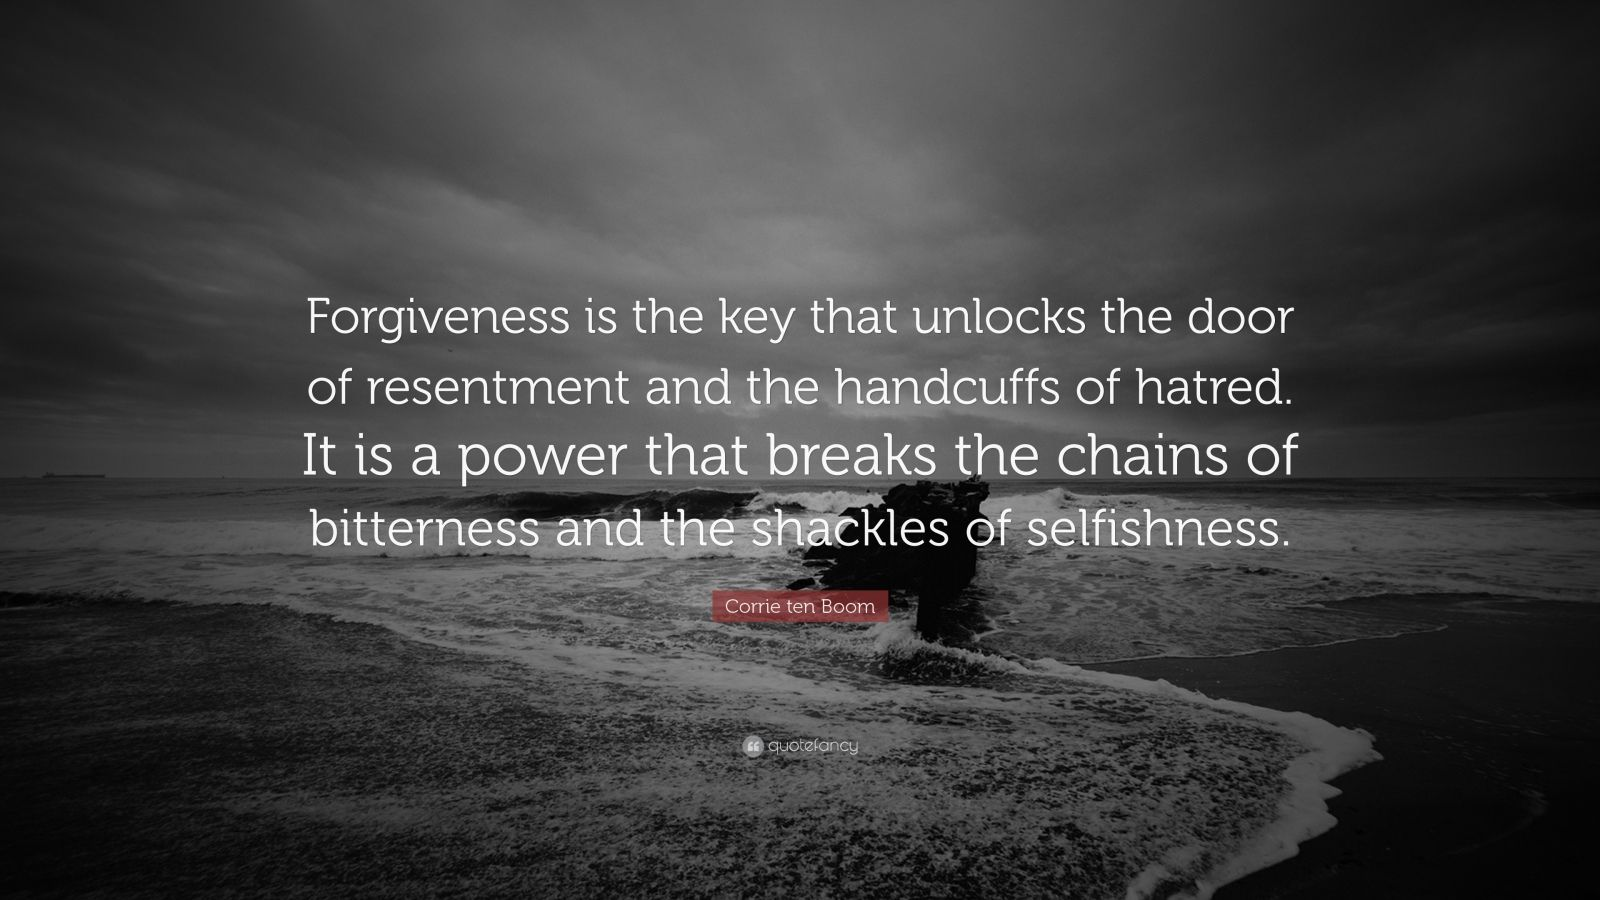 """Corrie ten Boom Quote: """"Forgiveness is the key that unlocks the door of resentment and the handcuffs of hatred. It is a power that breaks the chains of bitterness and the shackles of selfishness."""""""